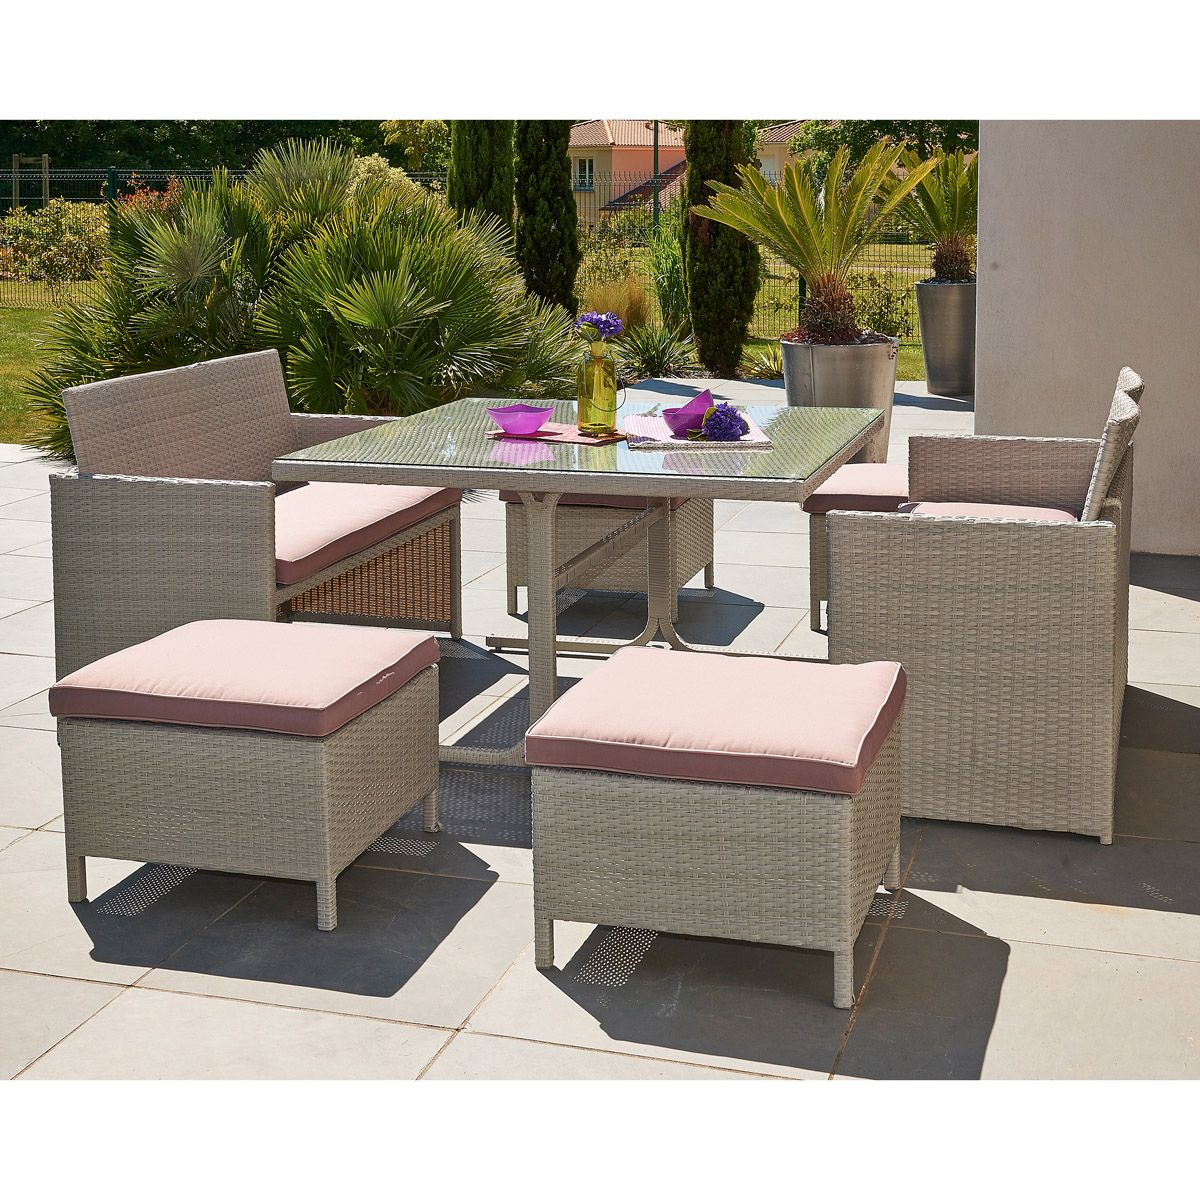 Salon De Jardin Table Carrée Ensemble De Jardin 8 Places Table Carrée 125 Cm Mobilier De